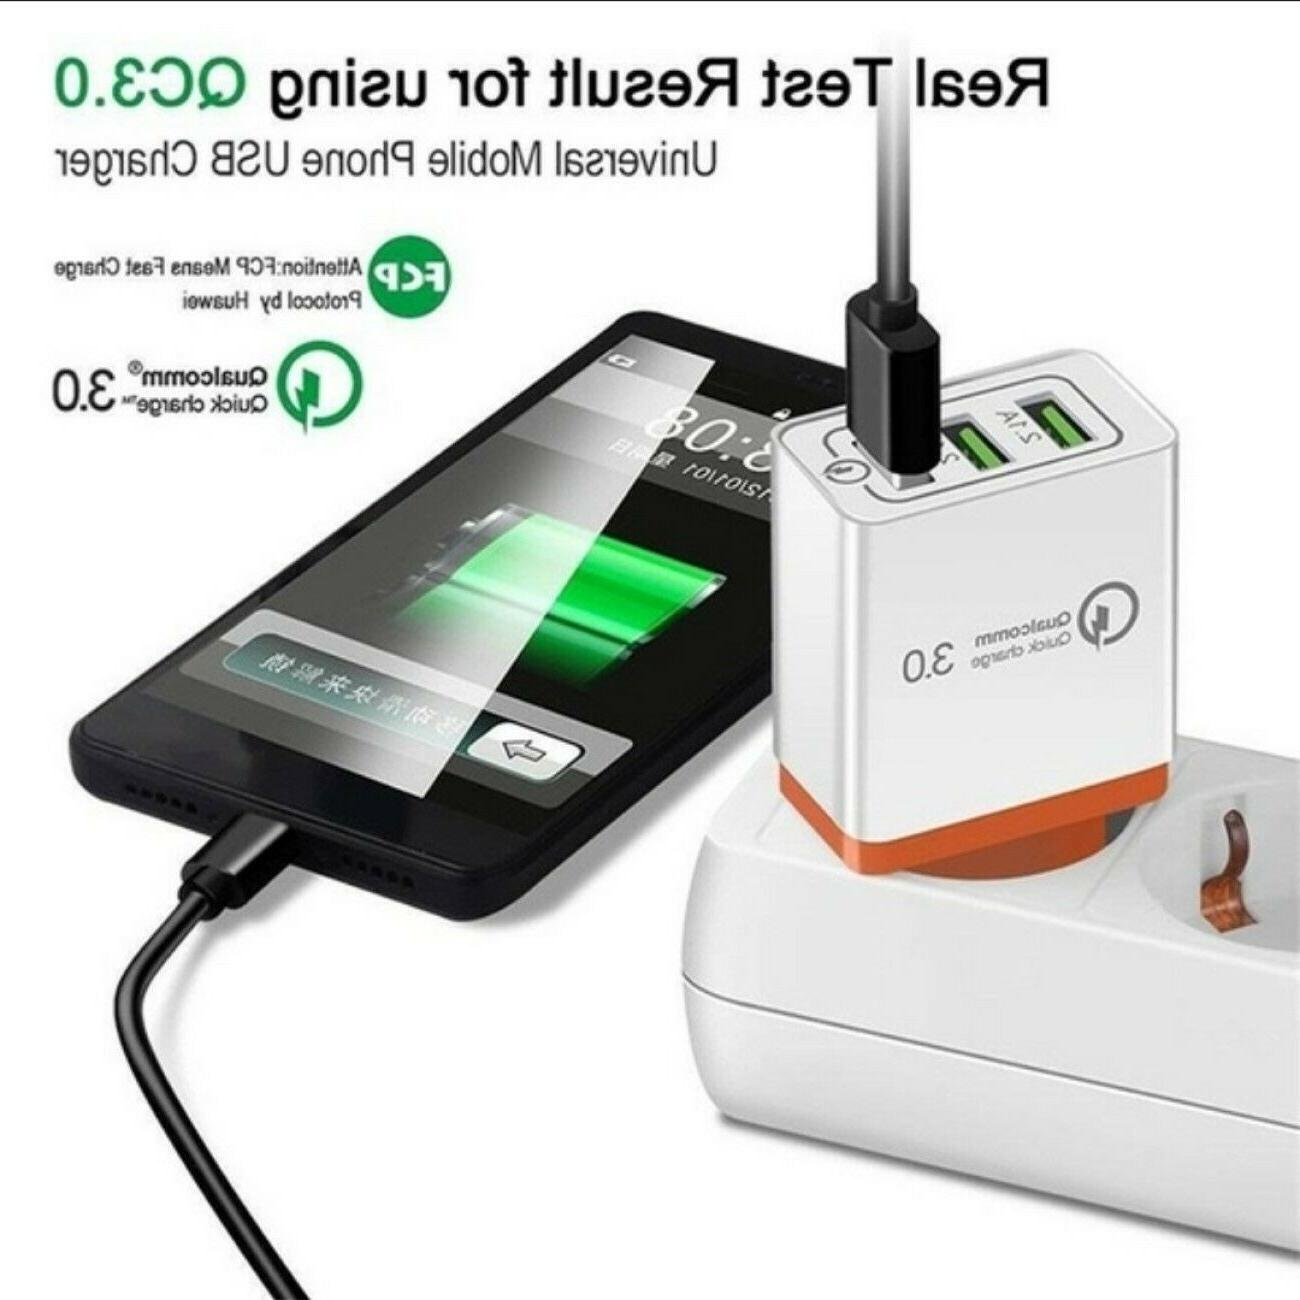 3 Home Wall Fast Charger 3.0 iPhone Phone Samsung